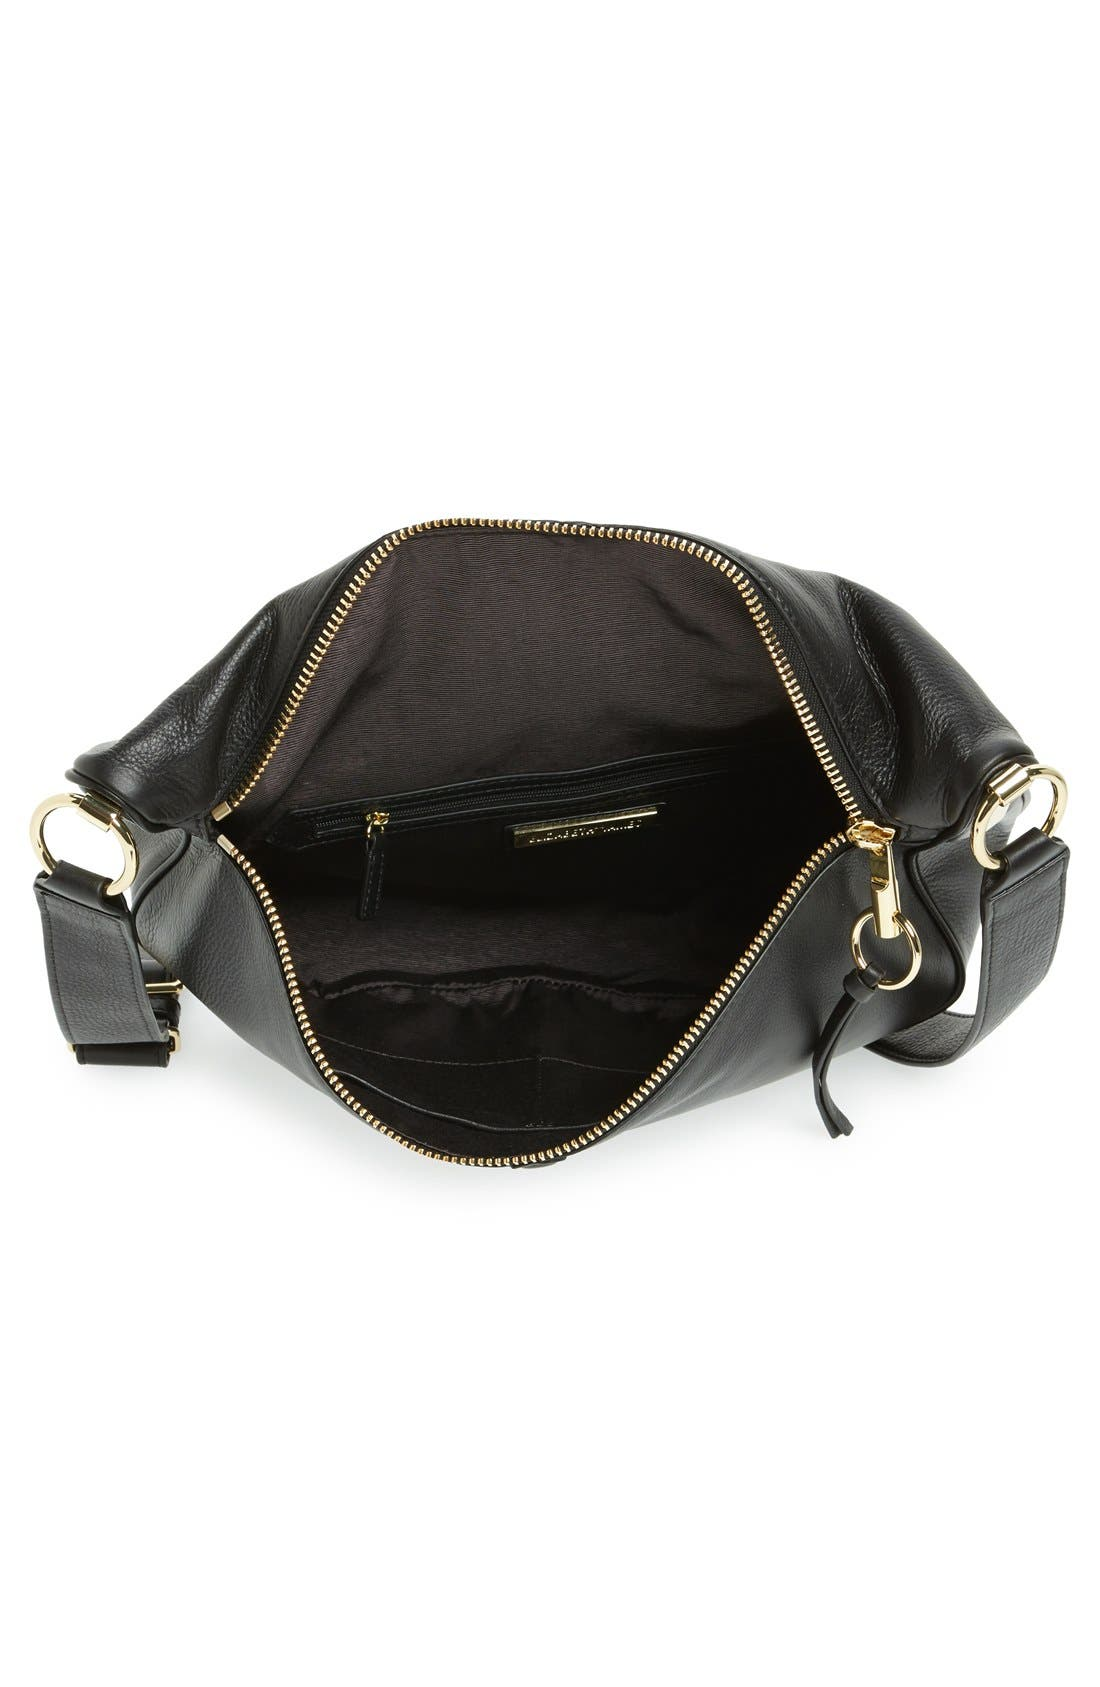 ELIZABETH AND JAMES, 'Scott Moon' Leather Crossbody Bag, Alternate thumbnail 3, color, 001